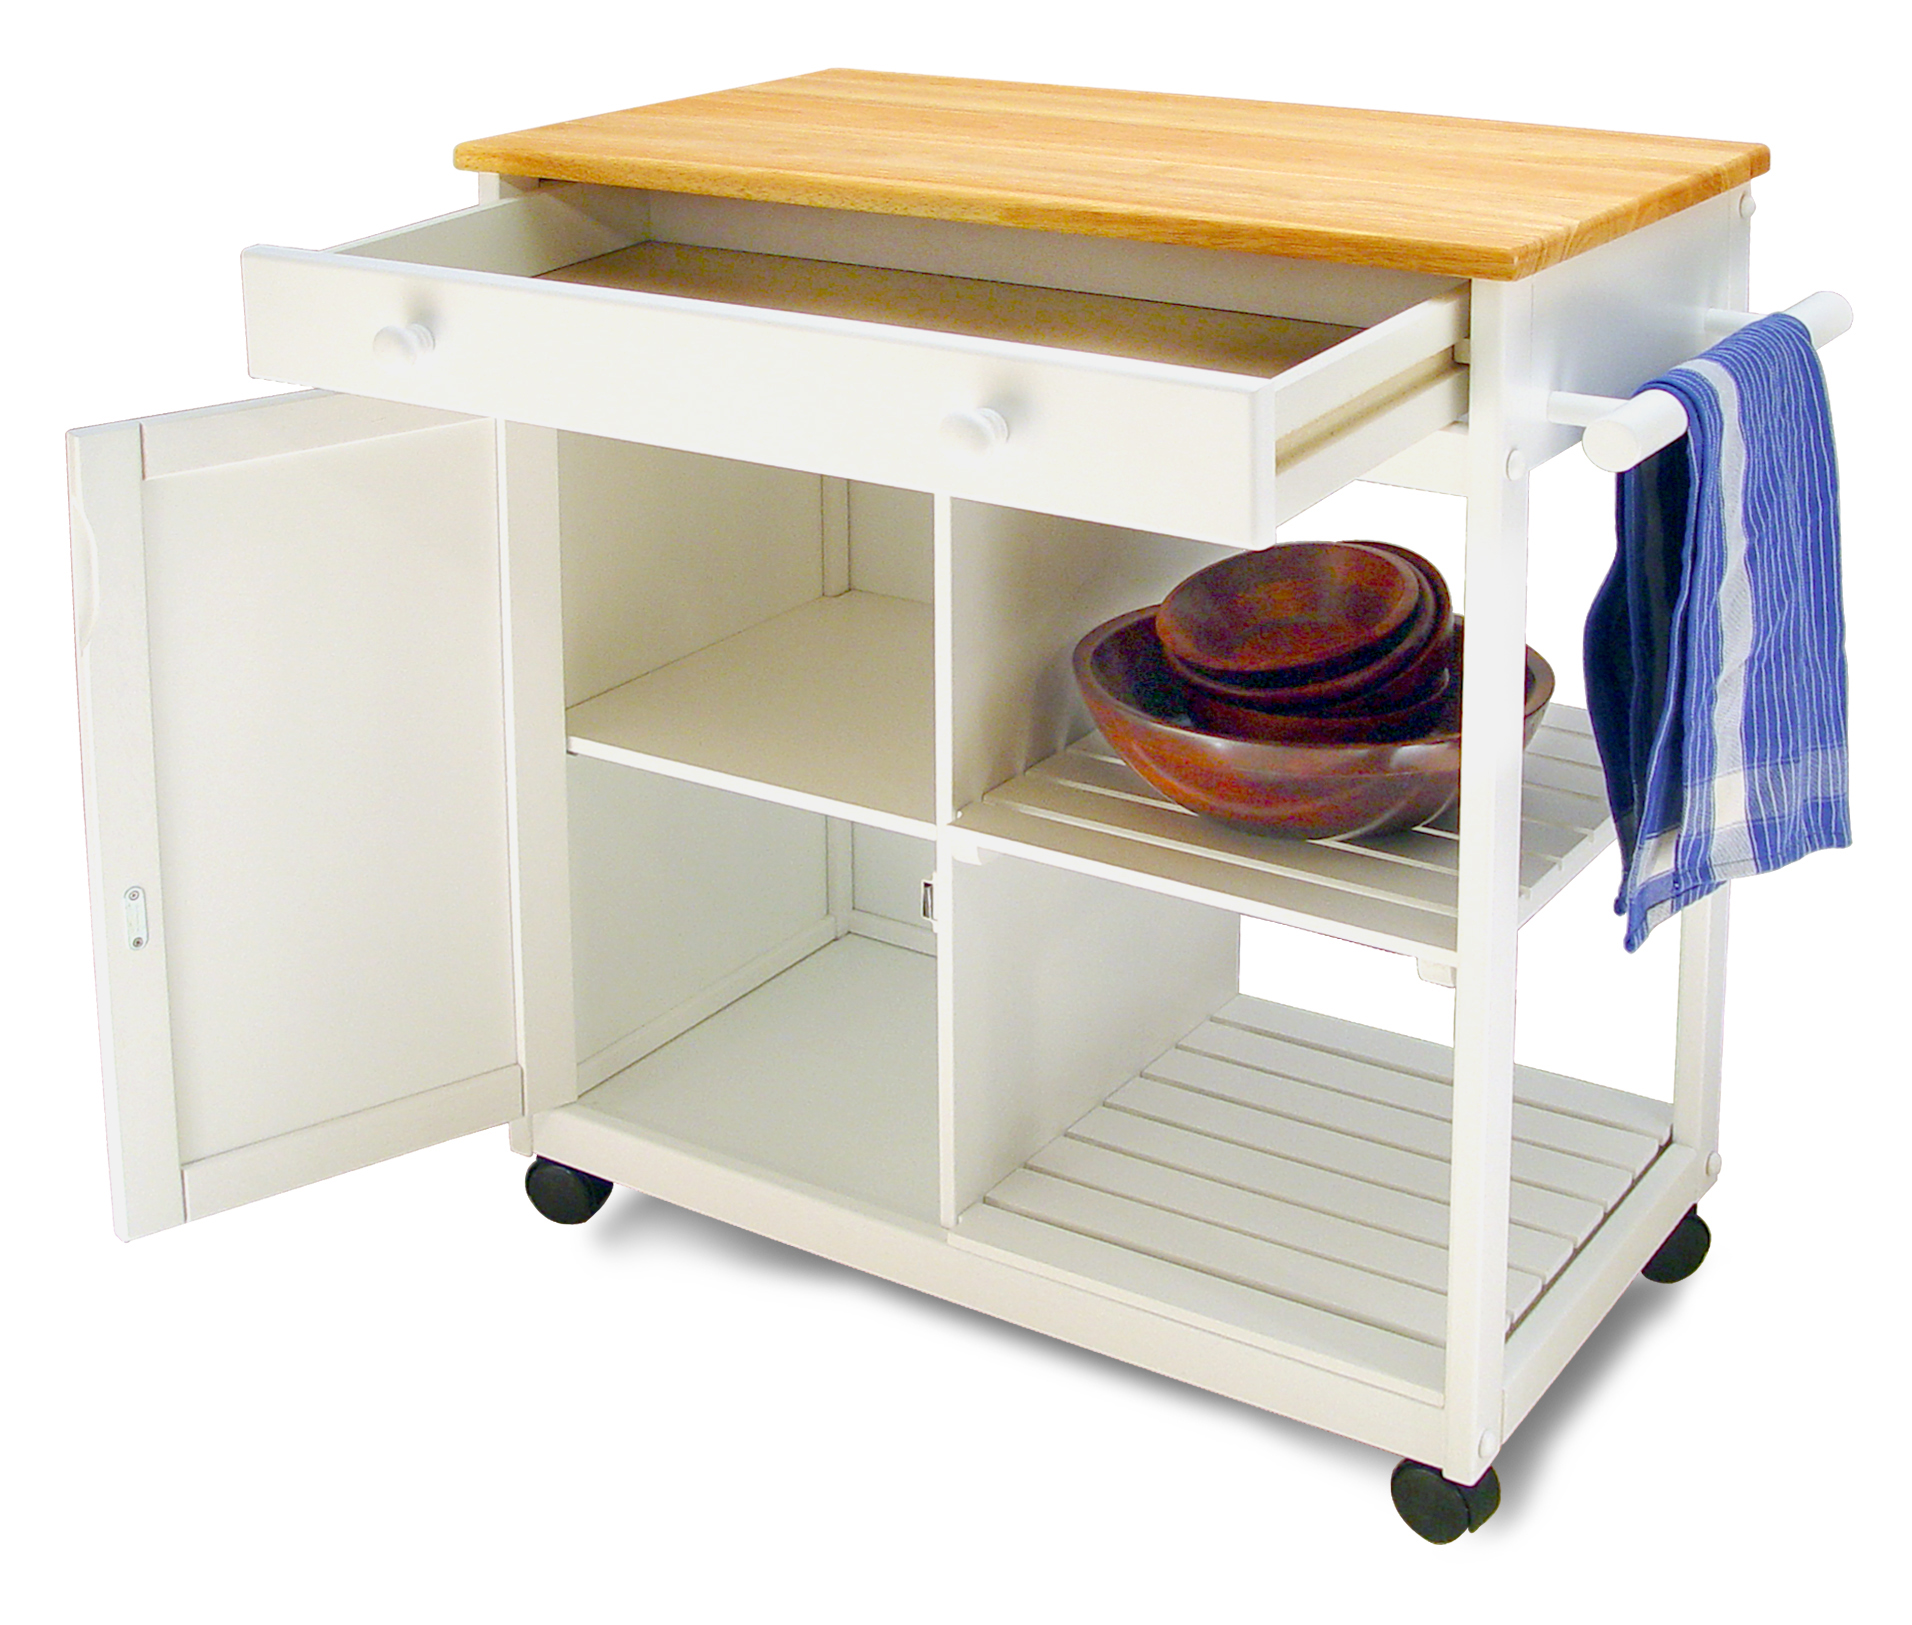 catskill craftsmen preston hollow kitchen cart model, Kitchen design